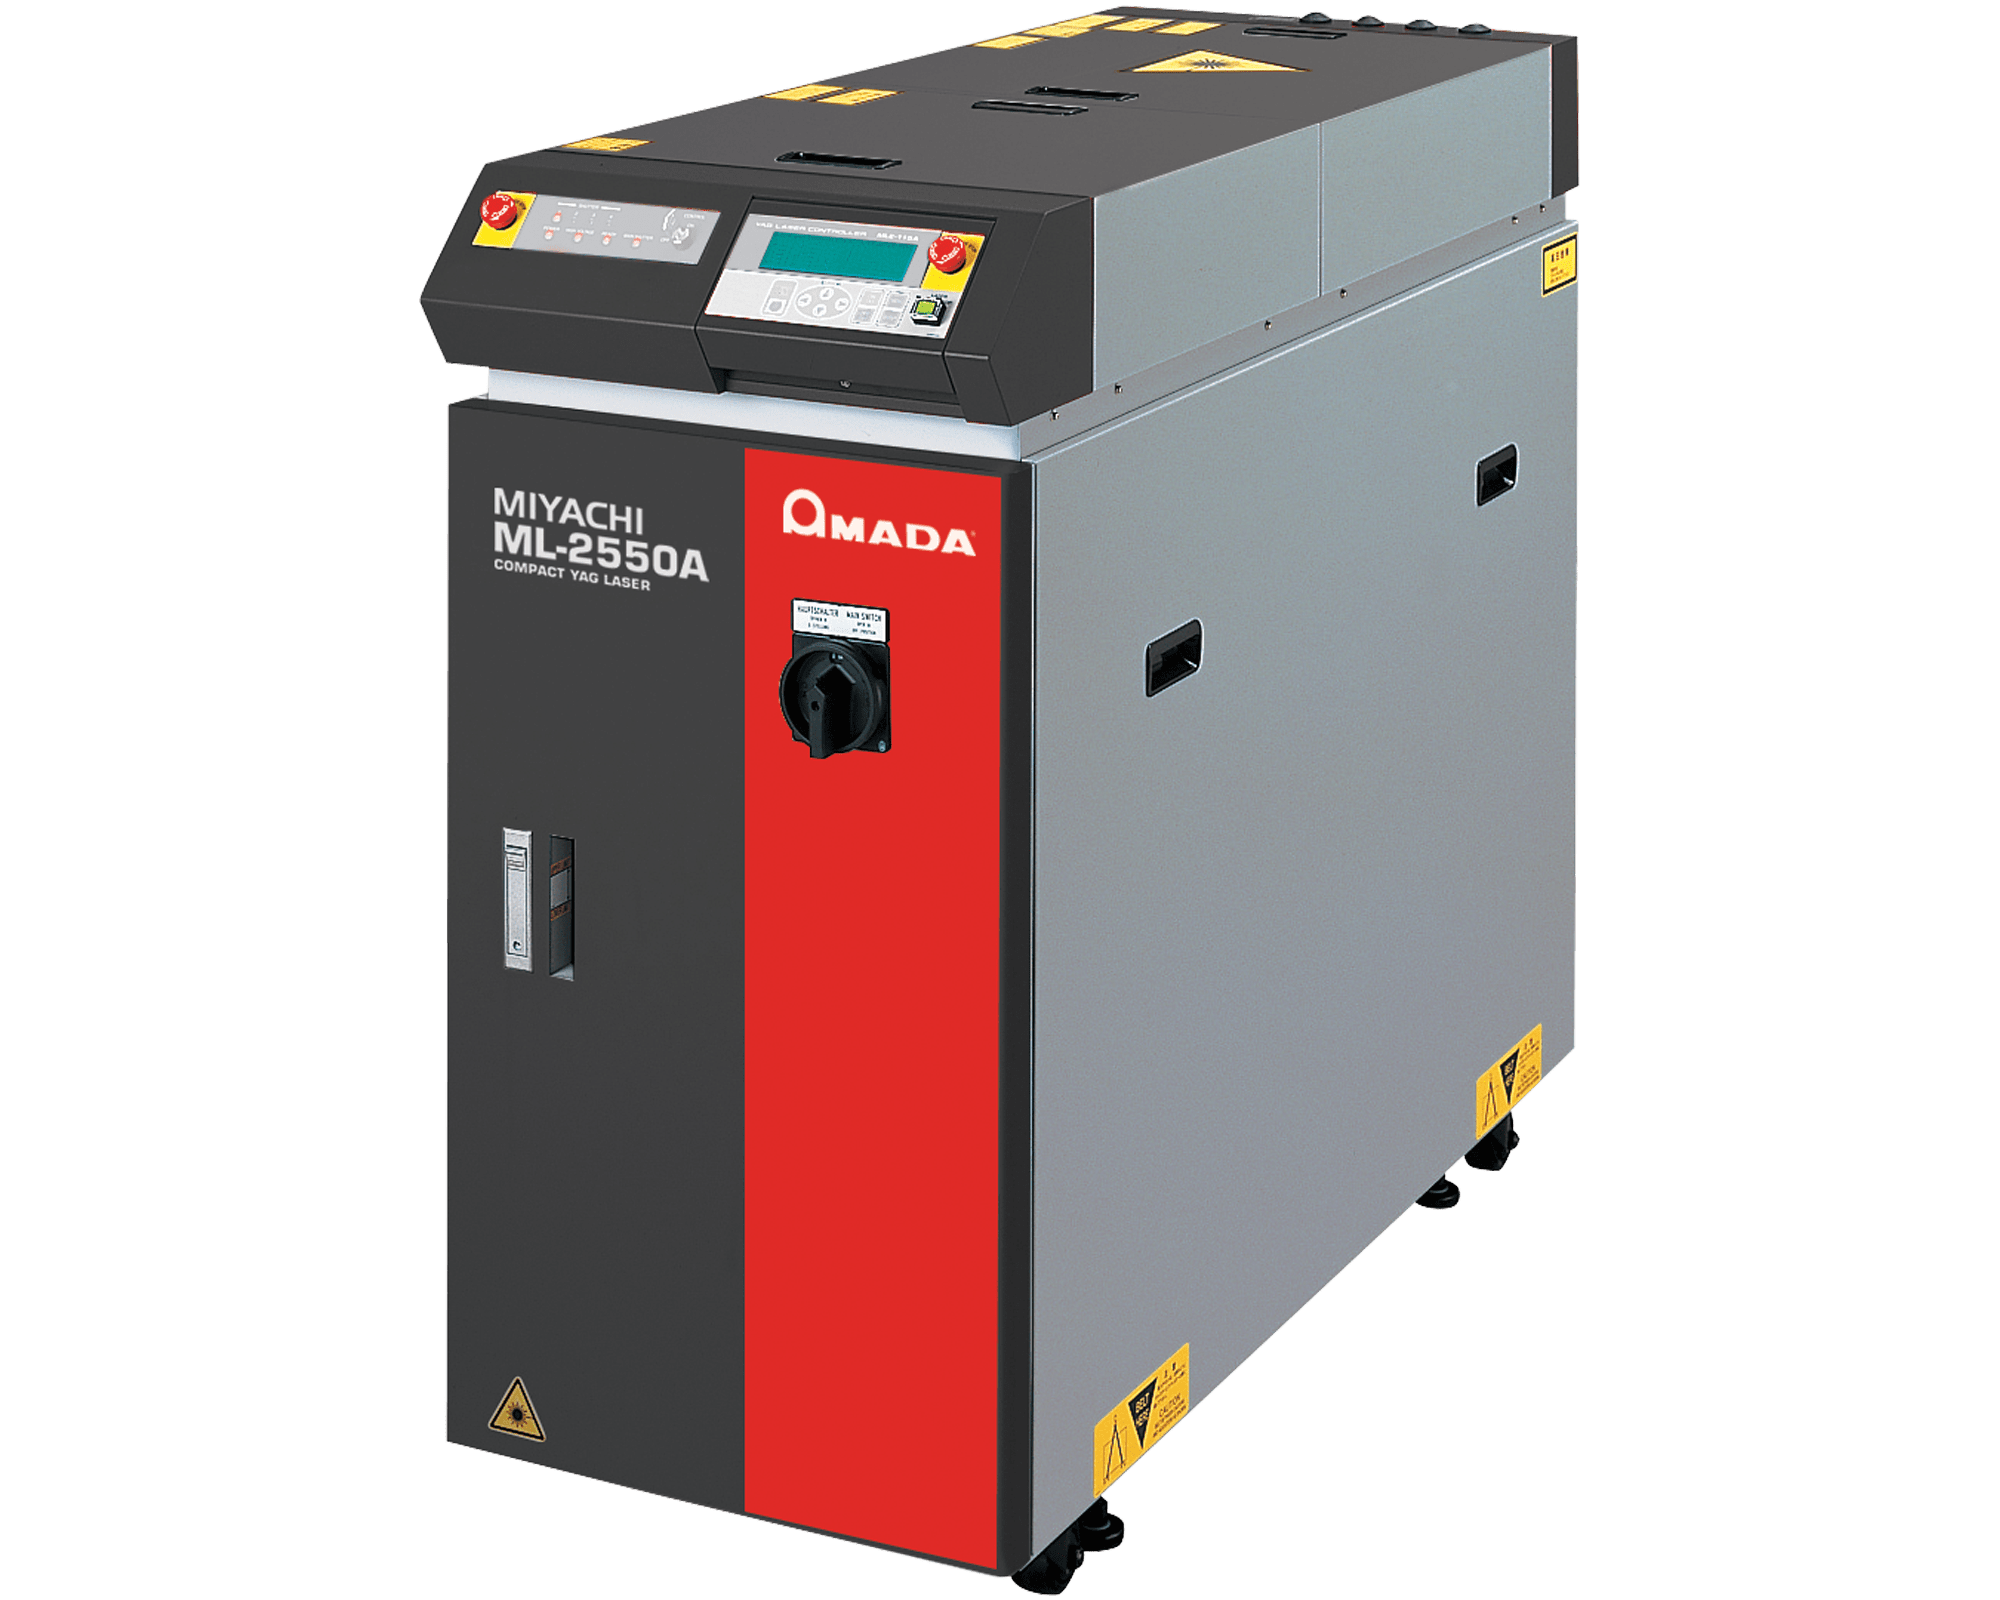 ML-2550A Nd:YAG <br>Laser Welder - 400 W</br>